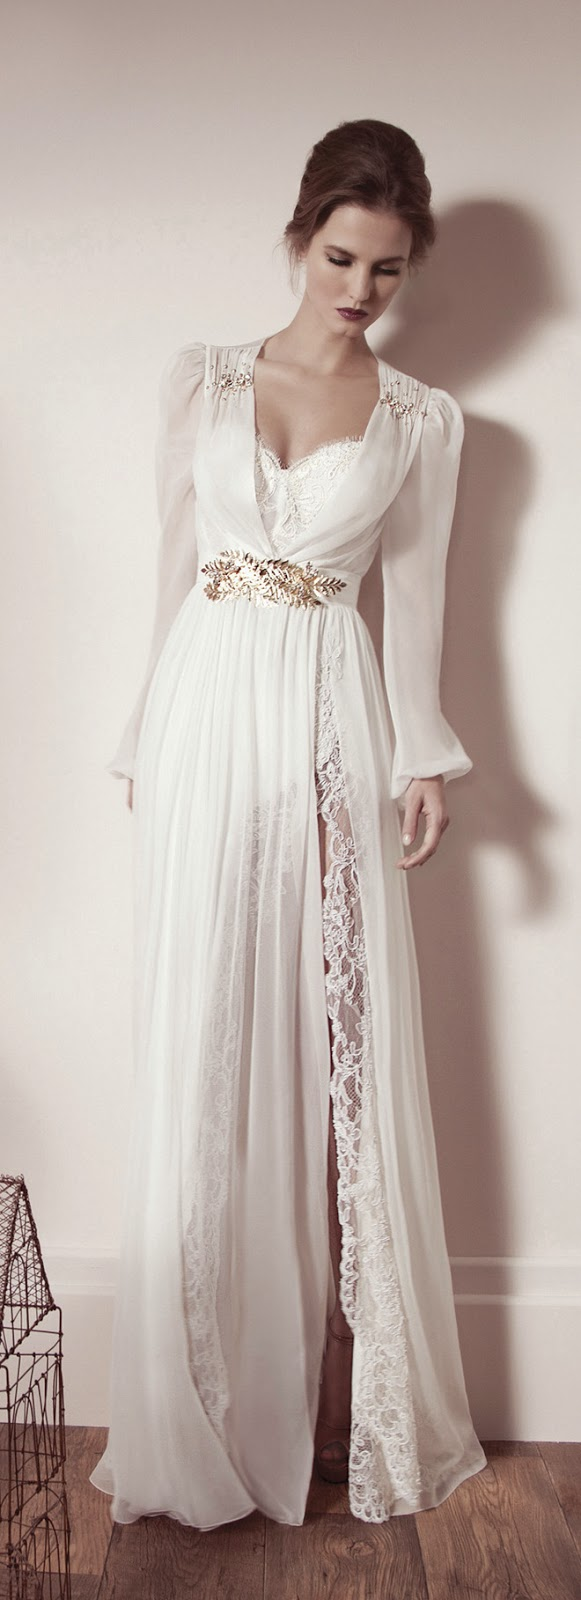 Winter wedding dresses belle the magazine for Night dress for wedding night